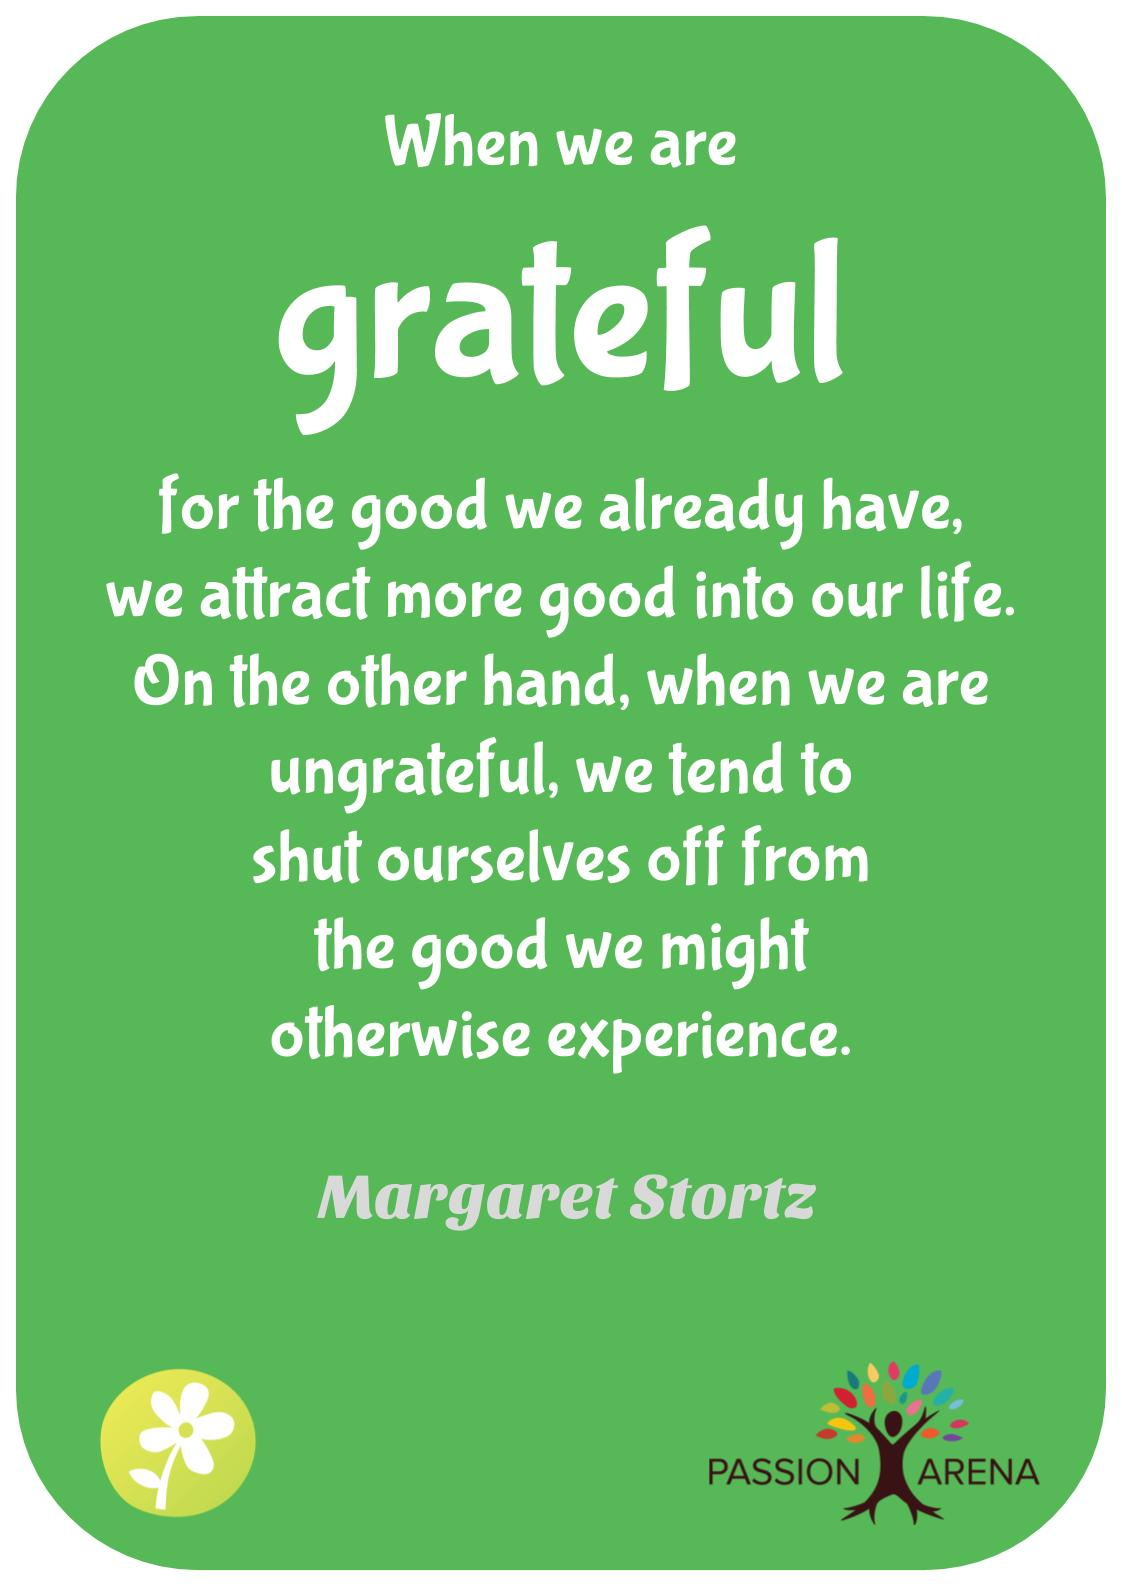 Intro-2-26. How grateful are you?